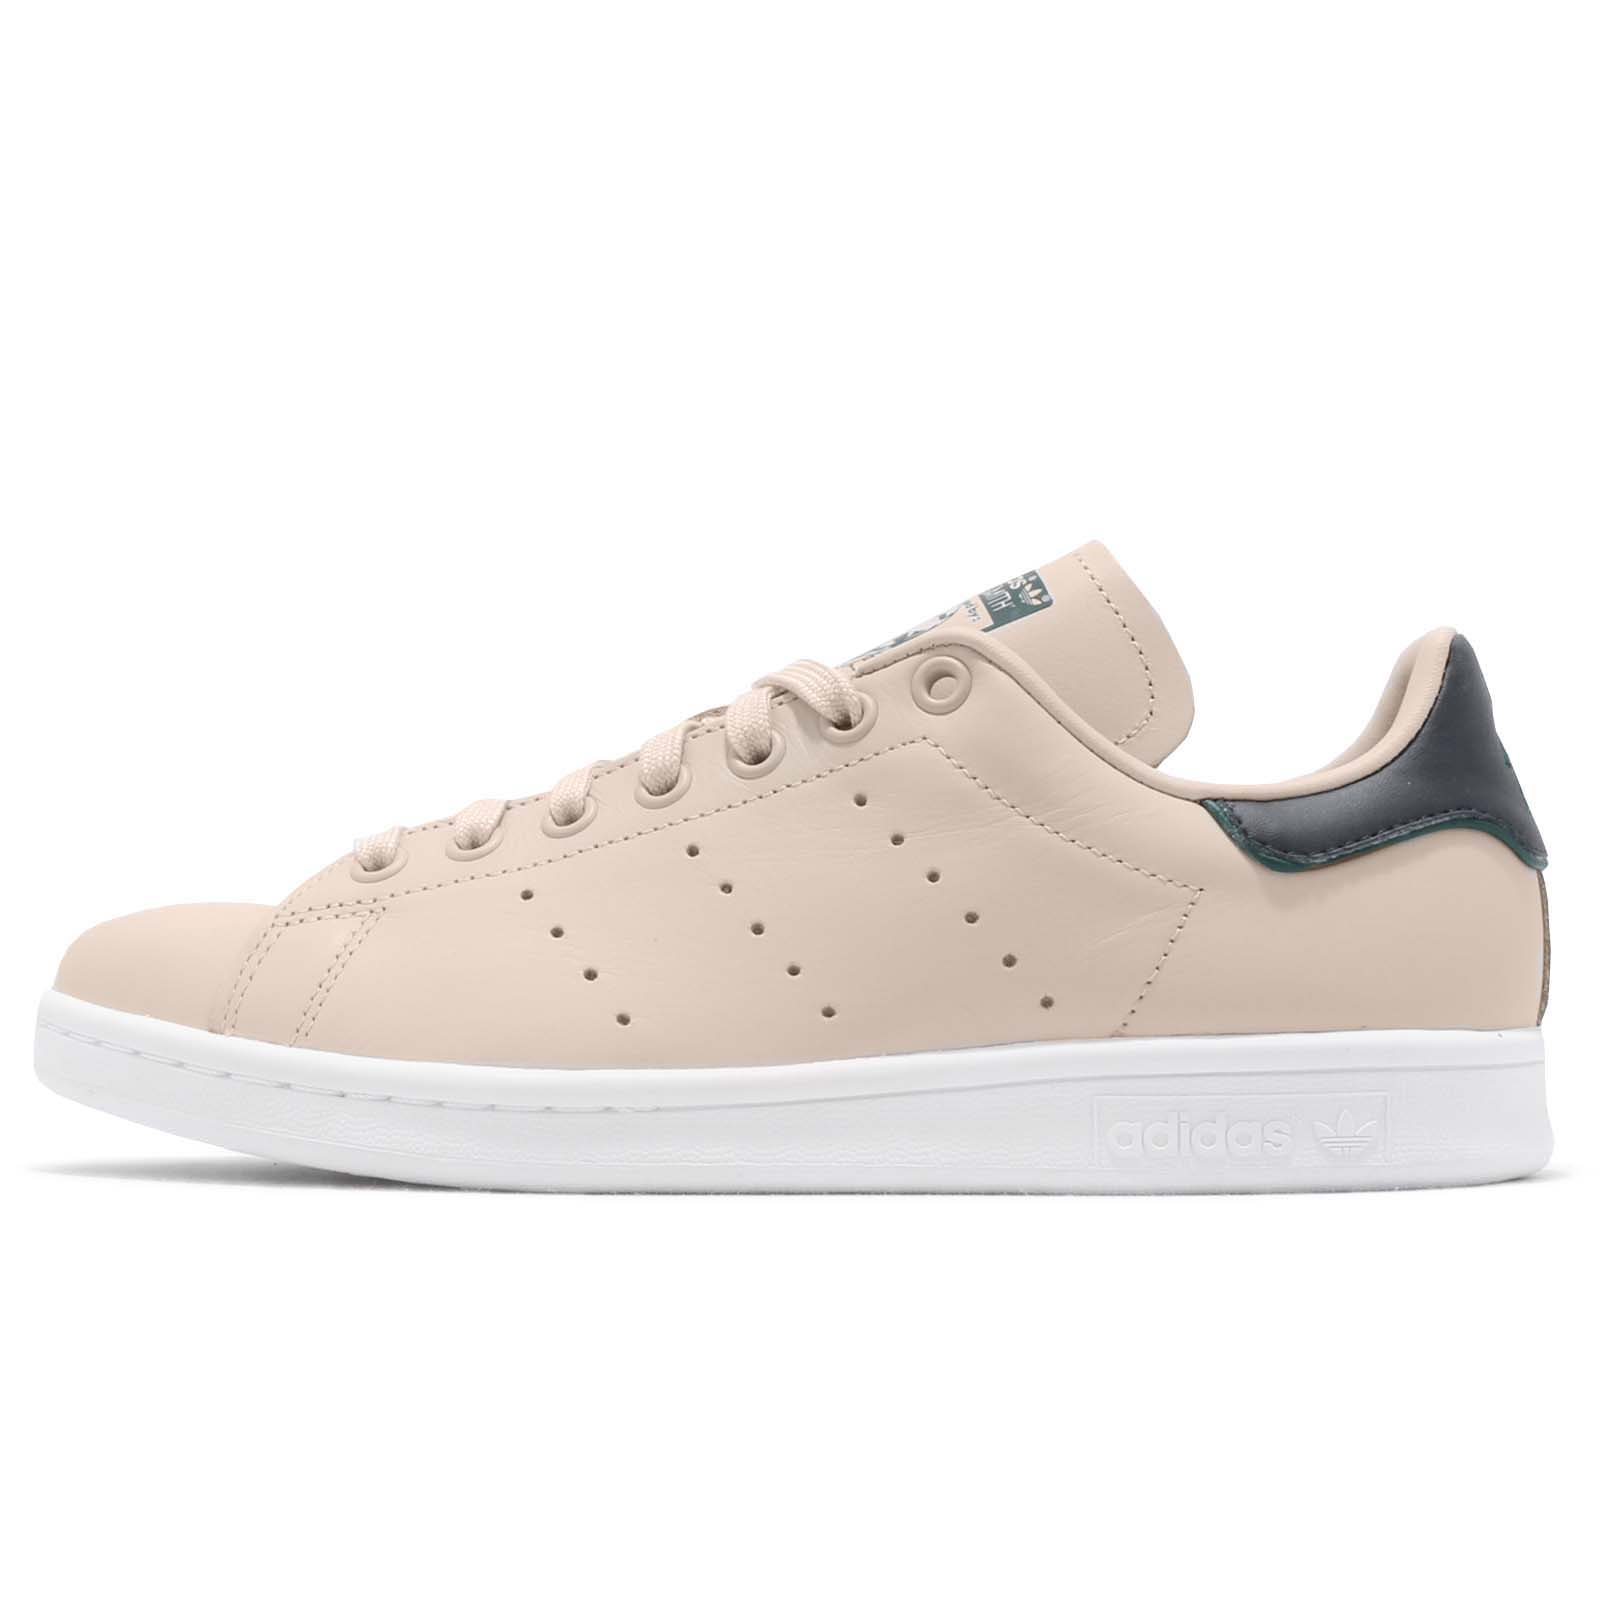 Details about adidas Originals Stan Smith Brown Green Men Women Casual  Shoes Sneakers B37910 1acdf5278